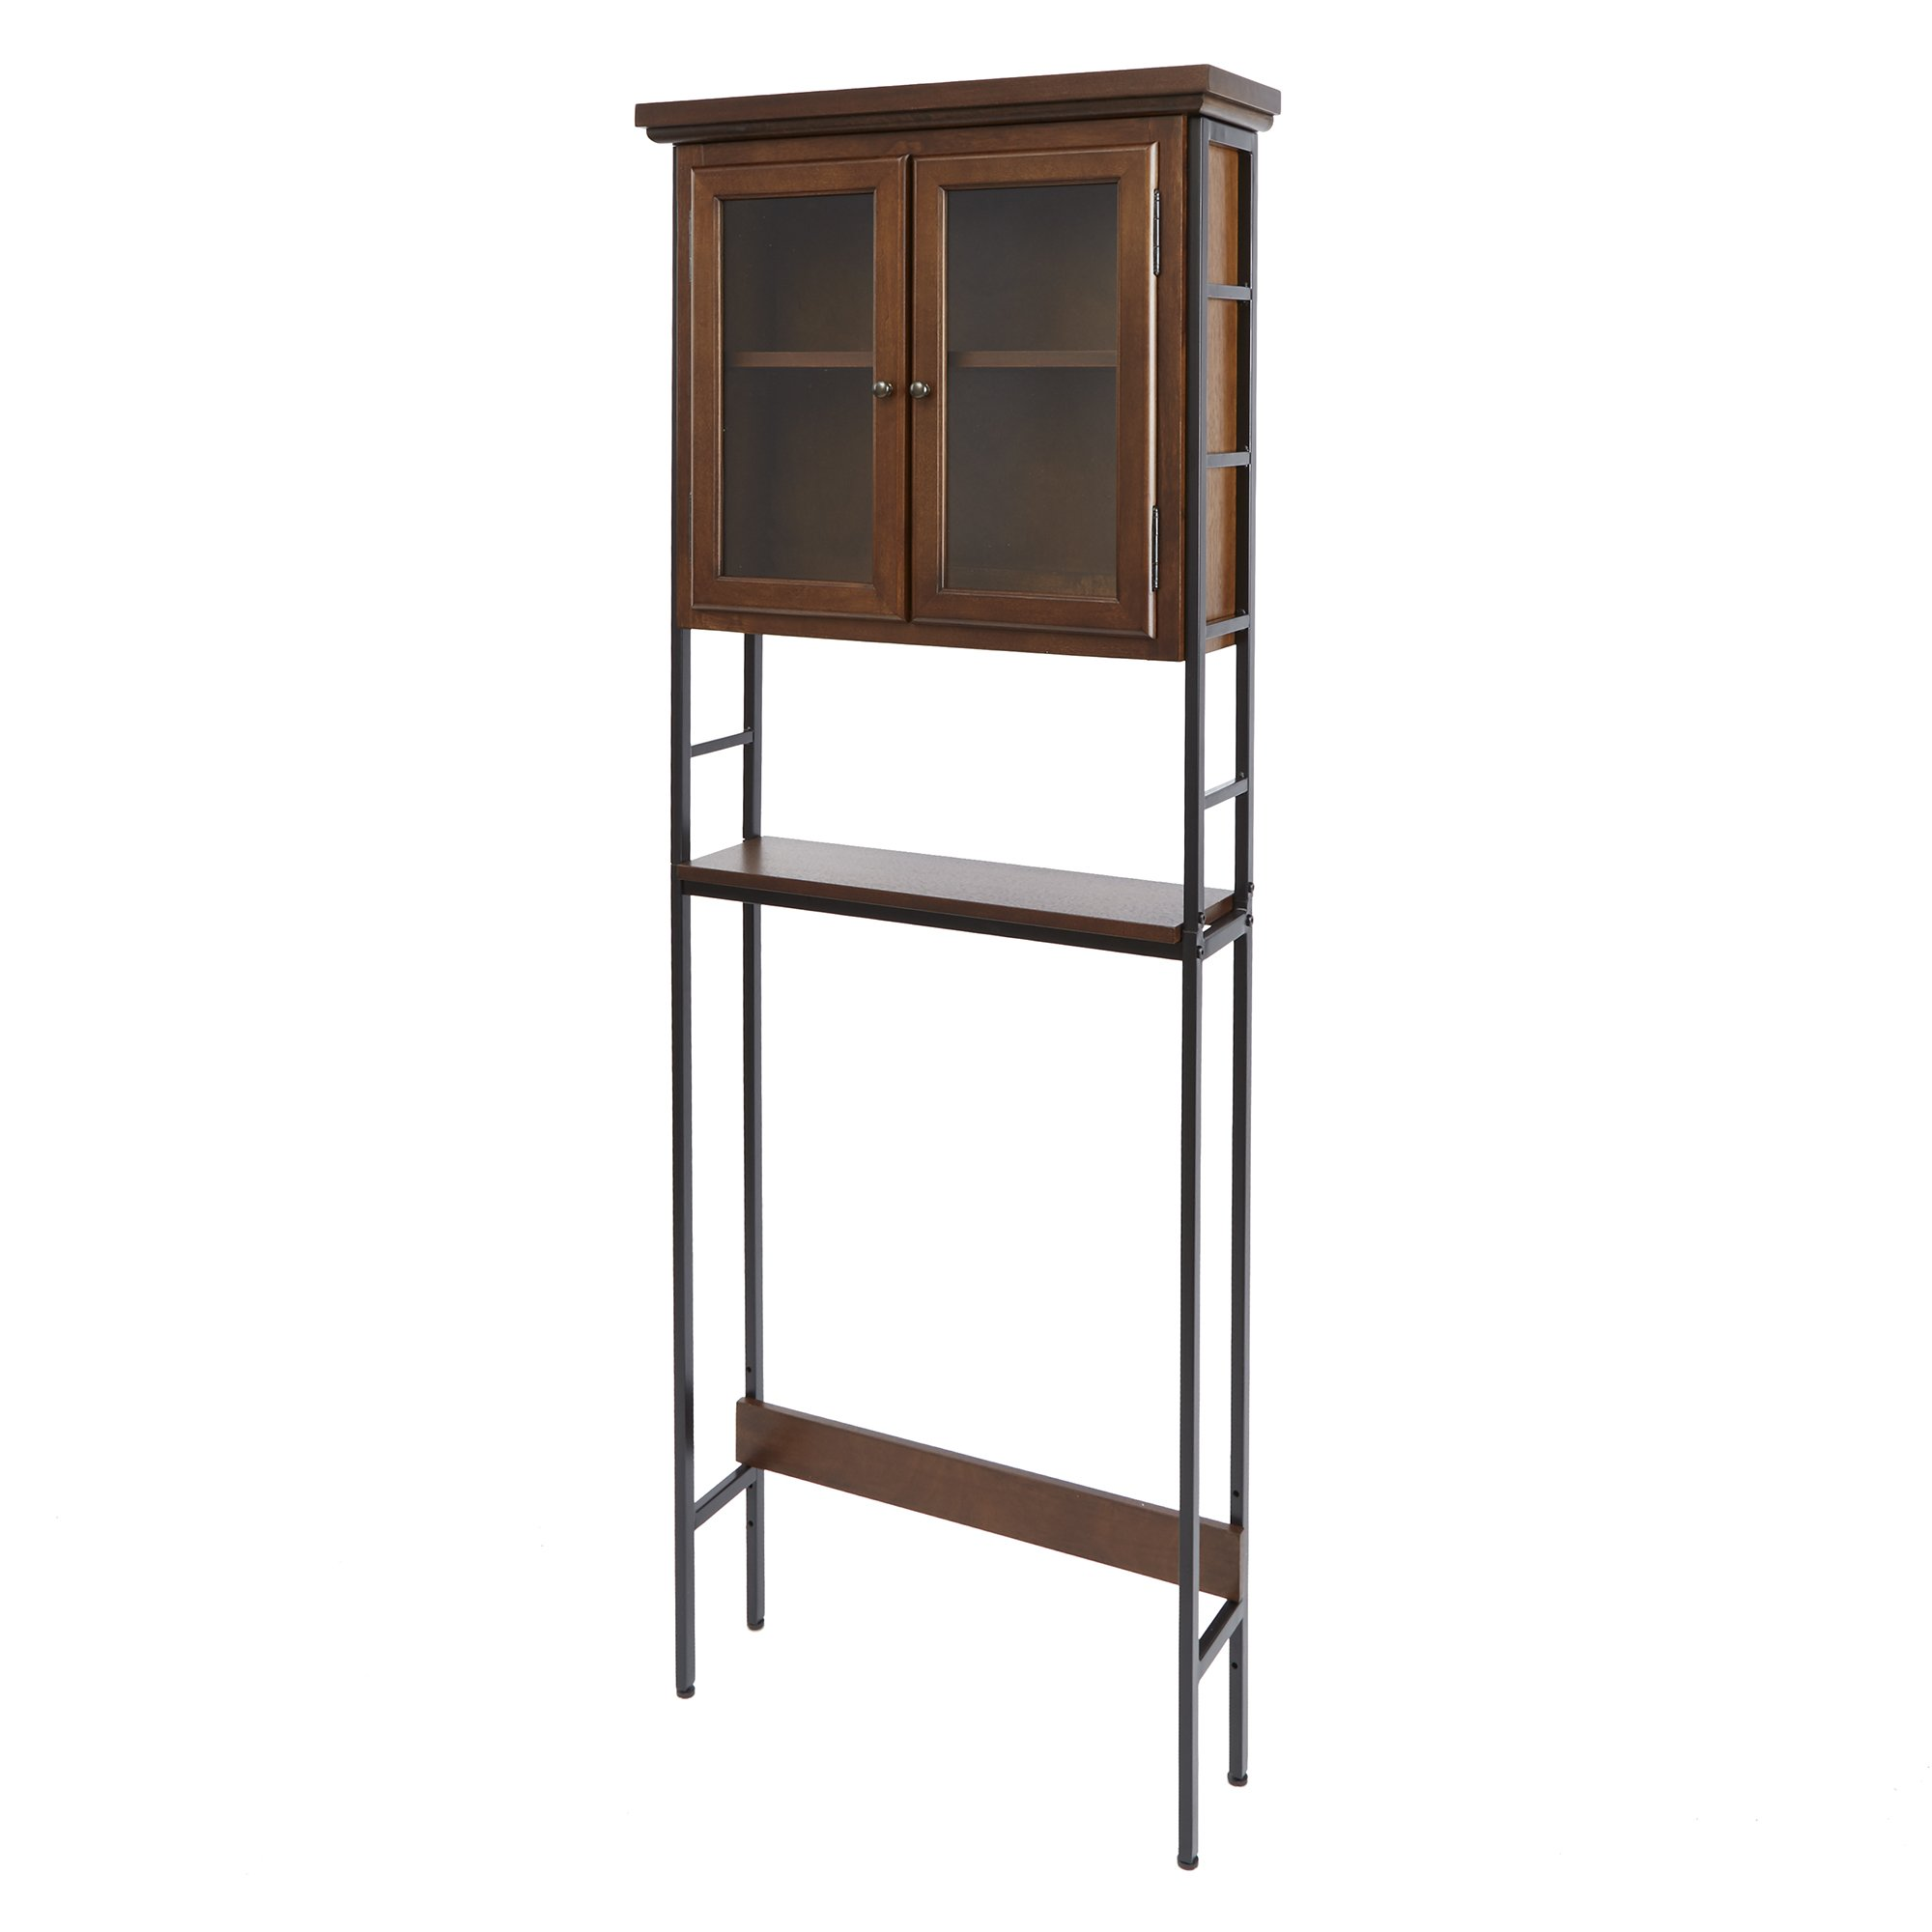 Silverwood Leighton Bathroom Collection 3-Tier Space Saver with Glass Doors 3, 67.5'' H